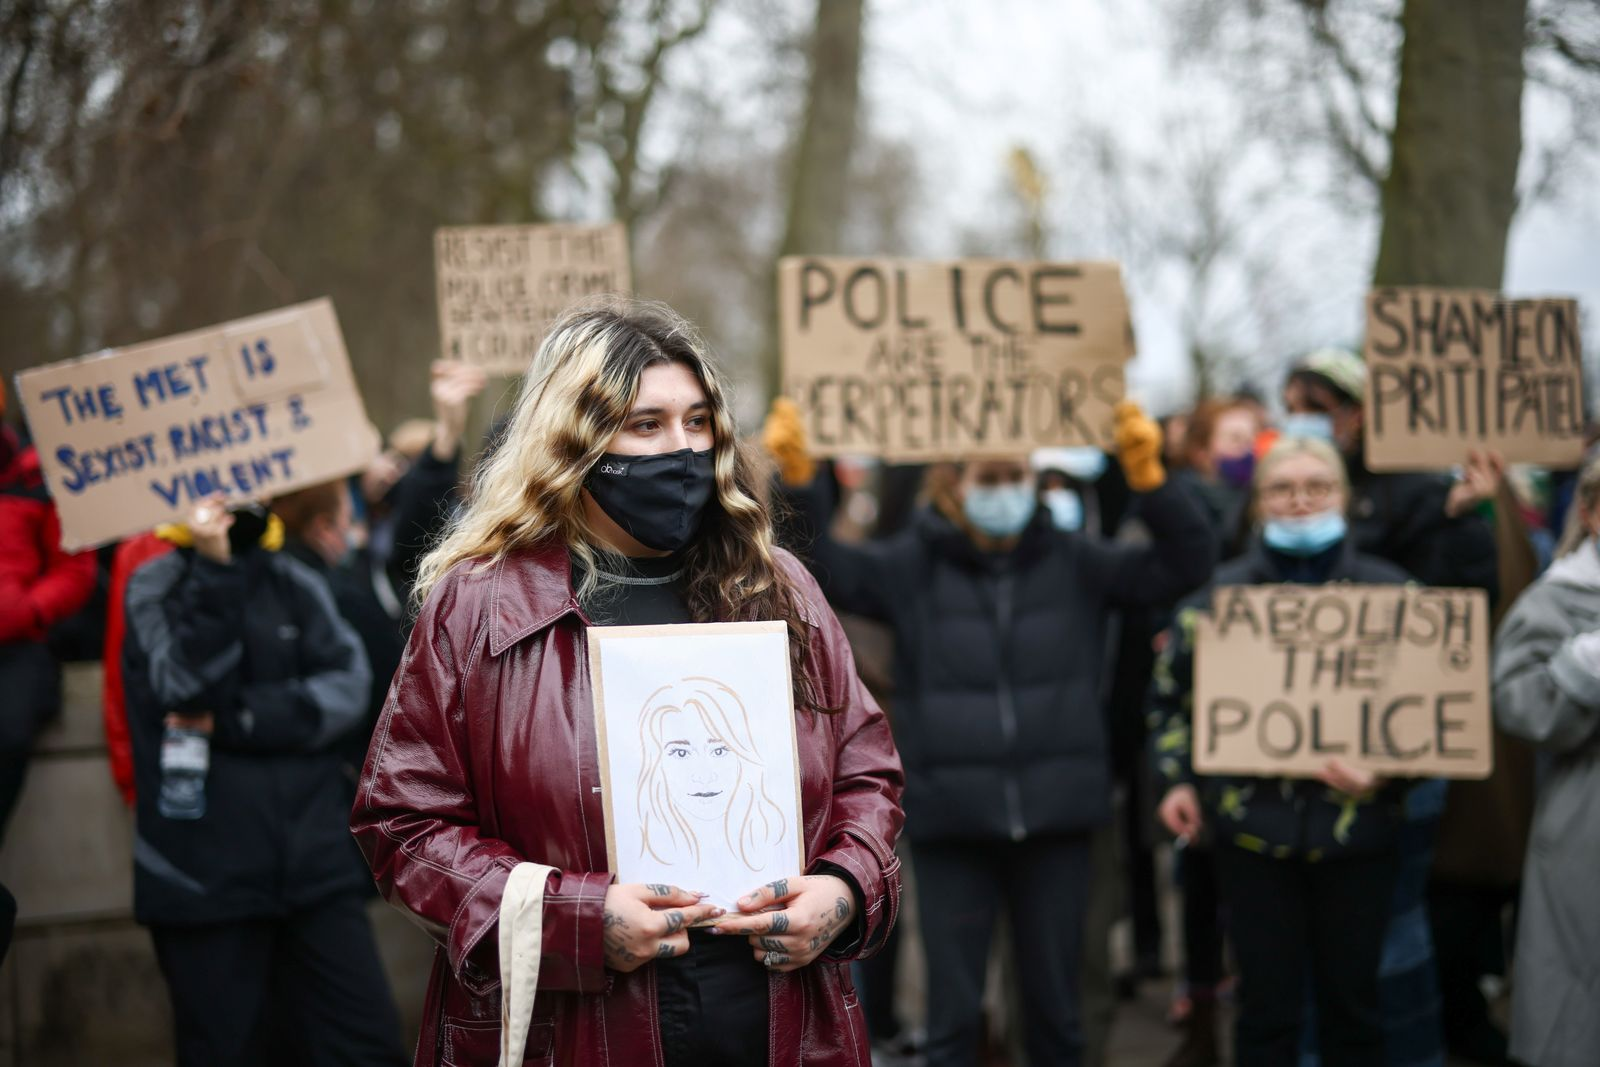 Protest outside New Scotland Yard police headquarters in London